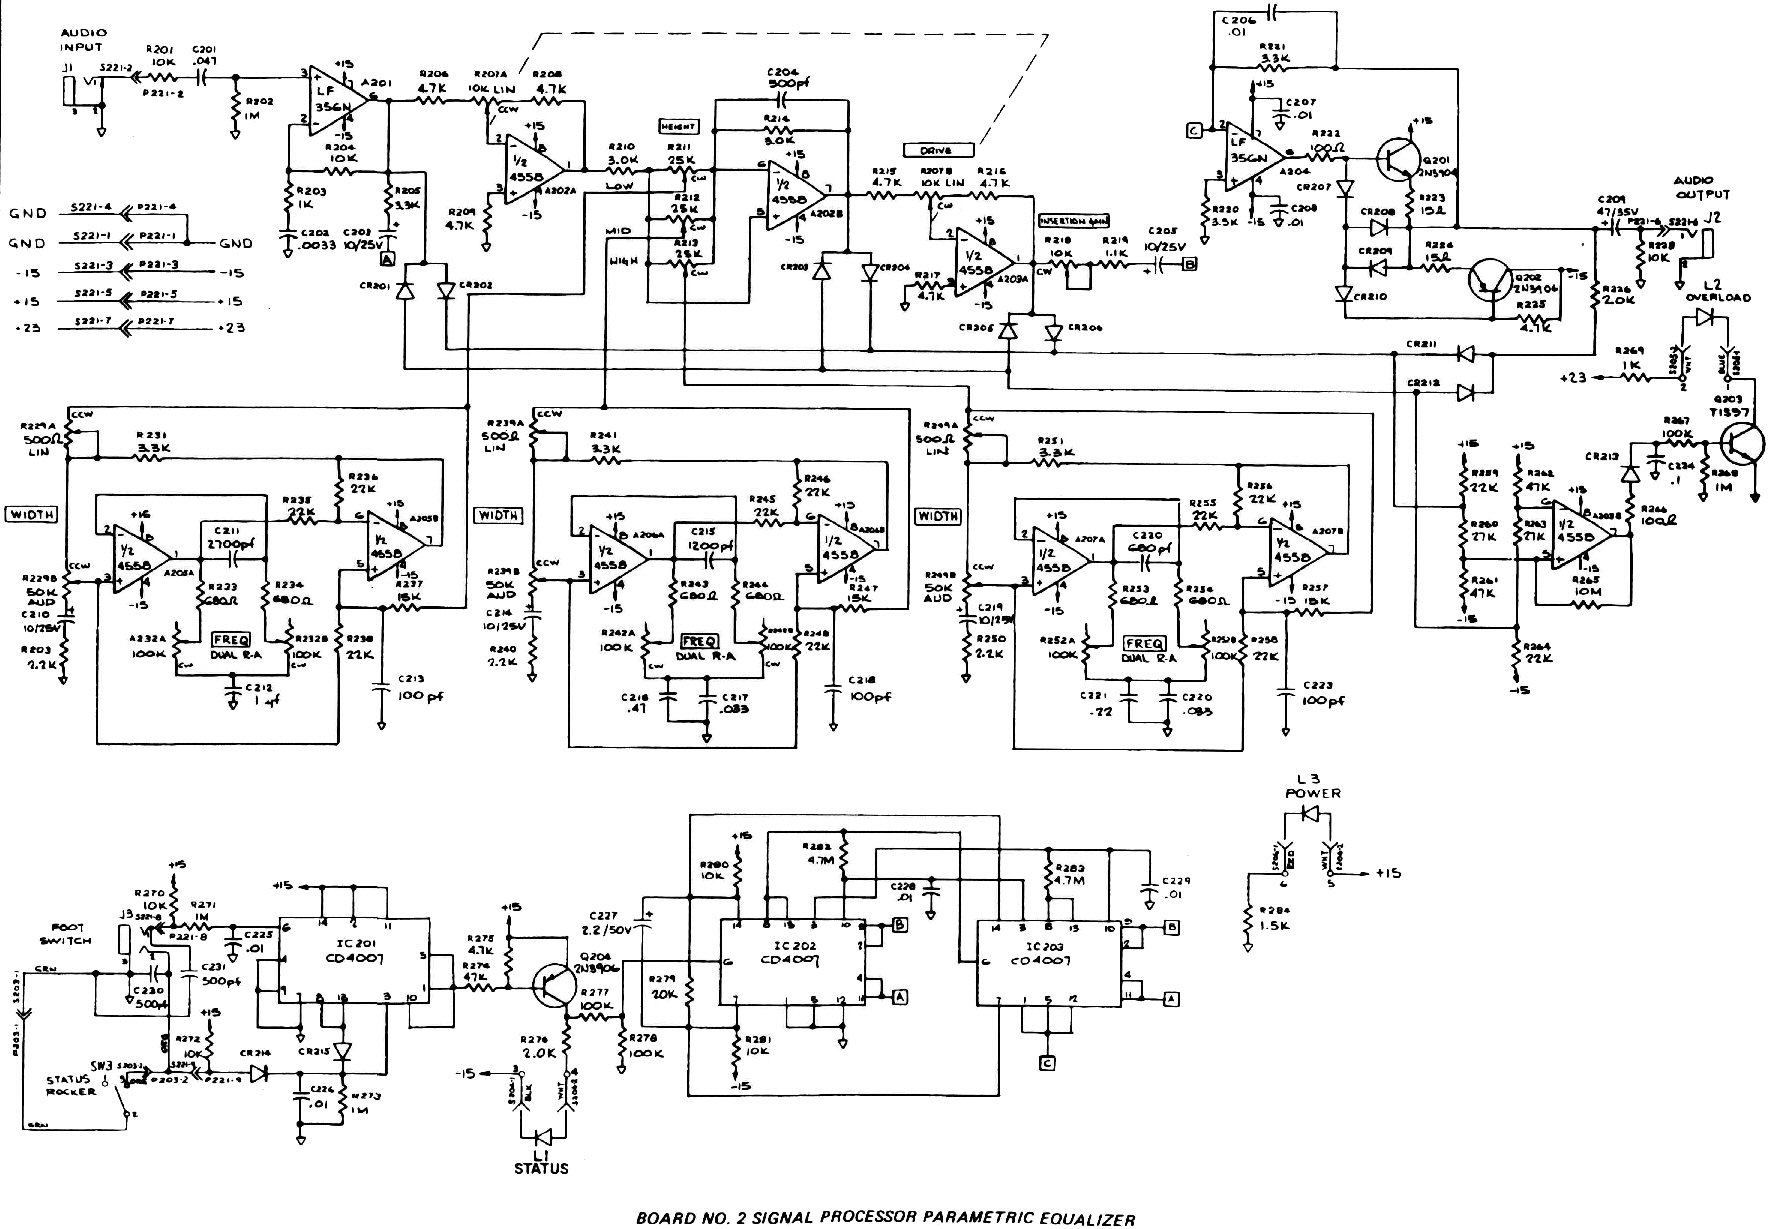 moog theremin schematic diagram part 1